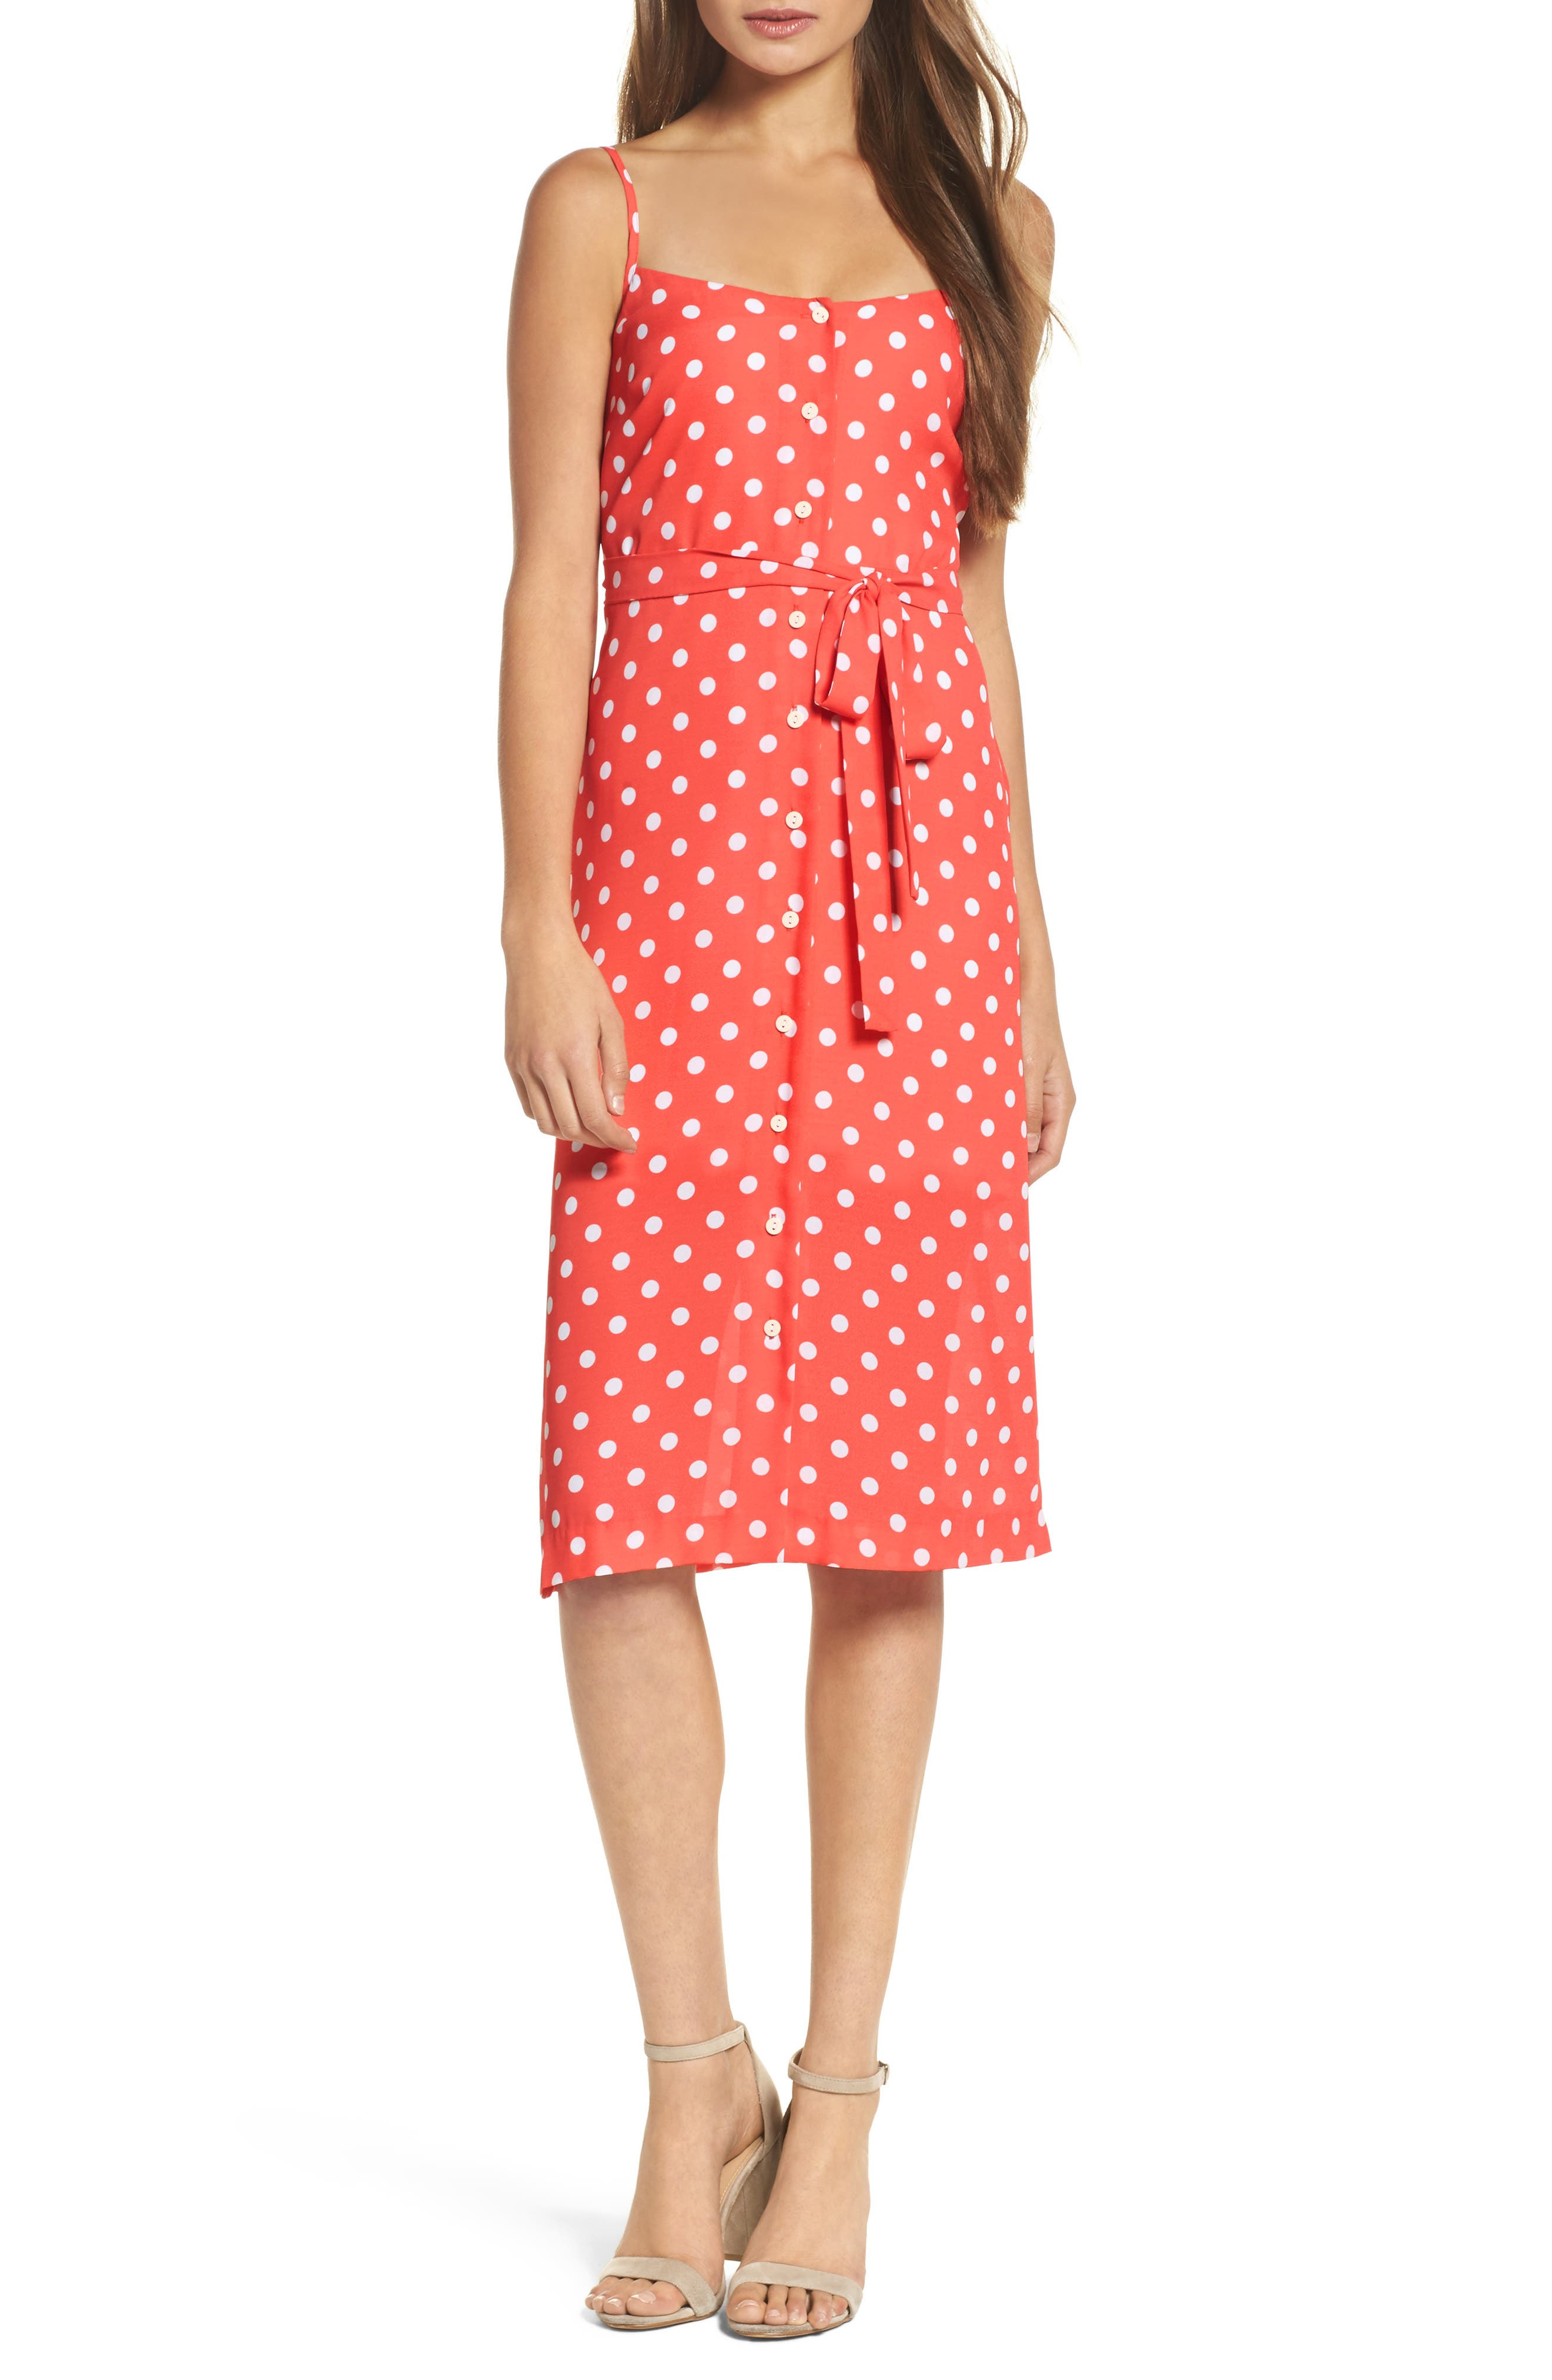 Flower Frolicking Midi Dress,                             Main thumbnail 1, color,                             Coral Polka Dot